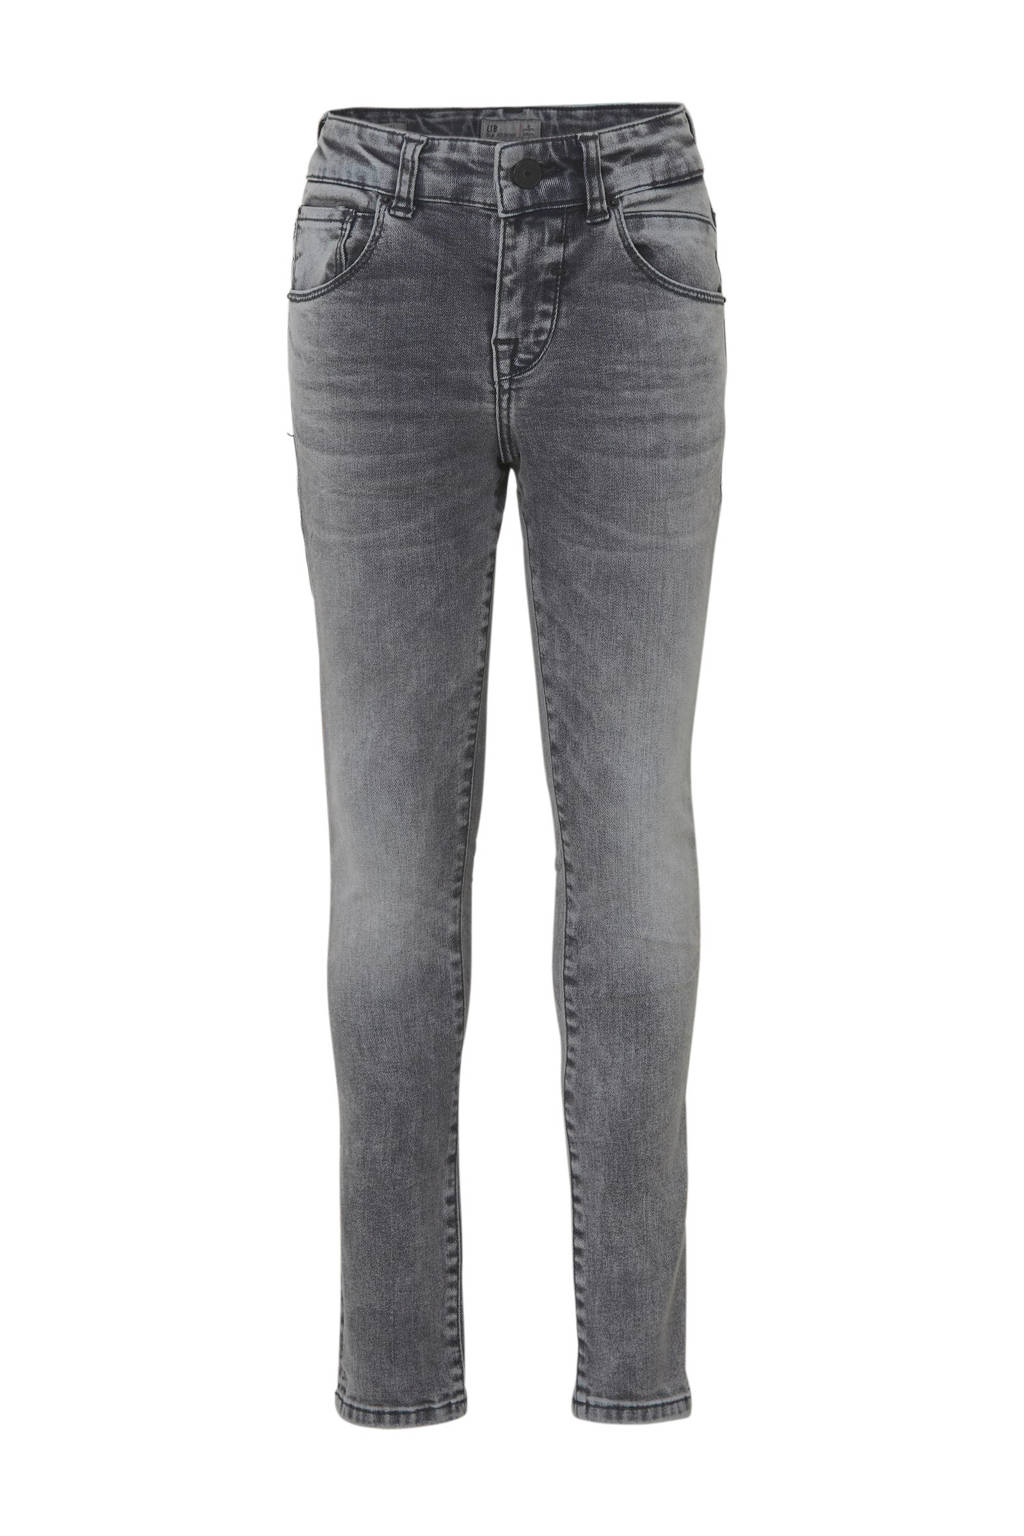 LTB slim fit jeans Rafiel grijs, Grijs (Withers wash)